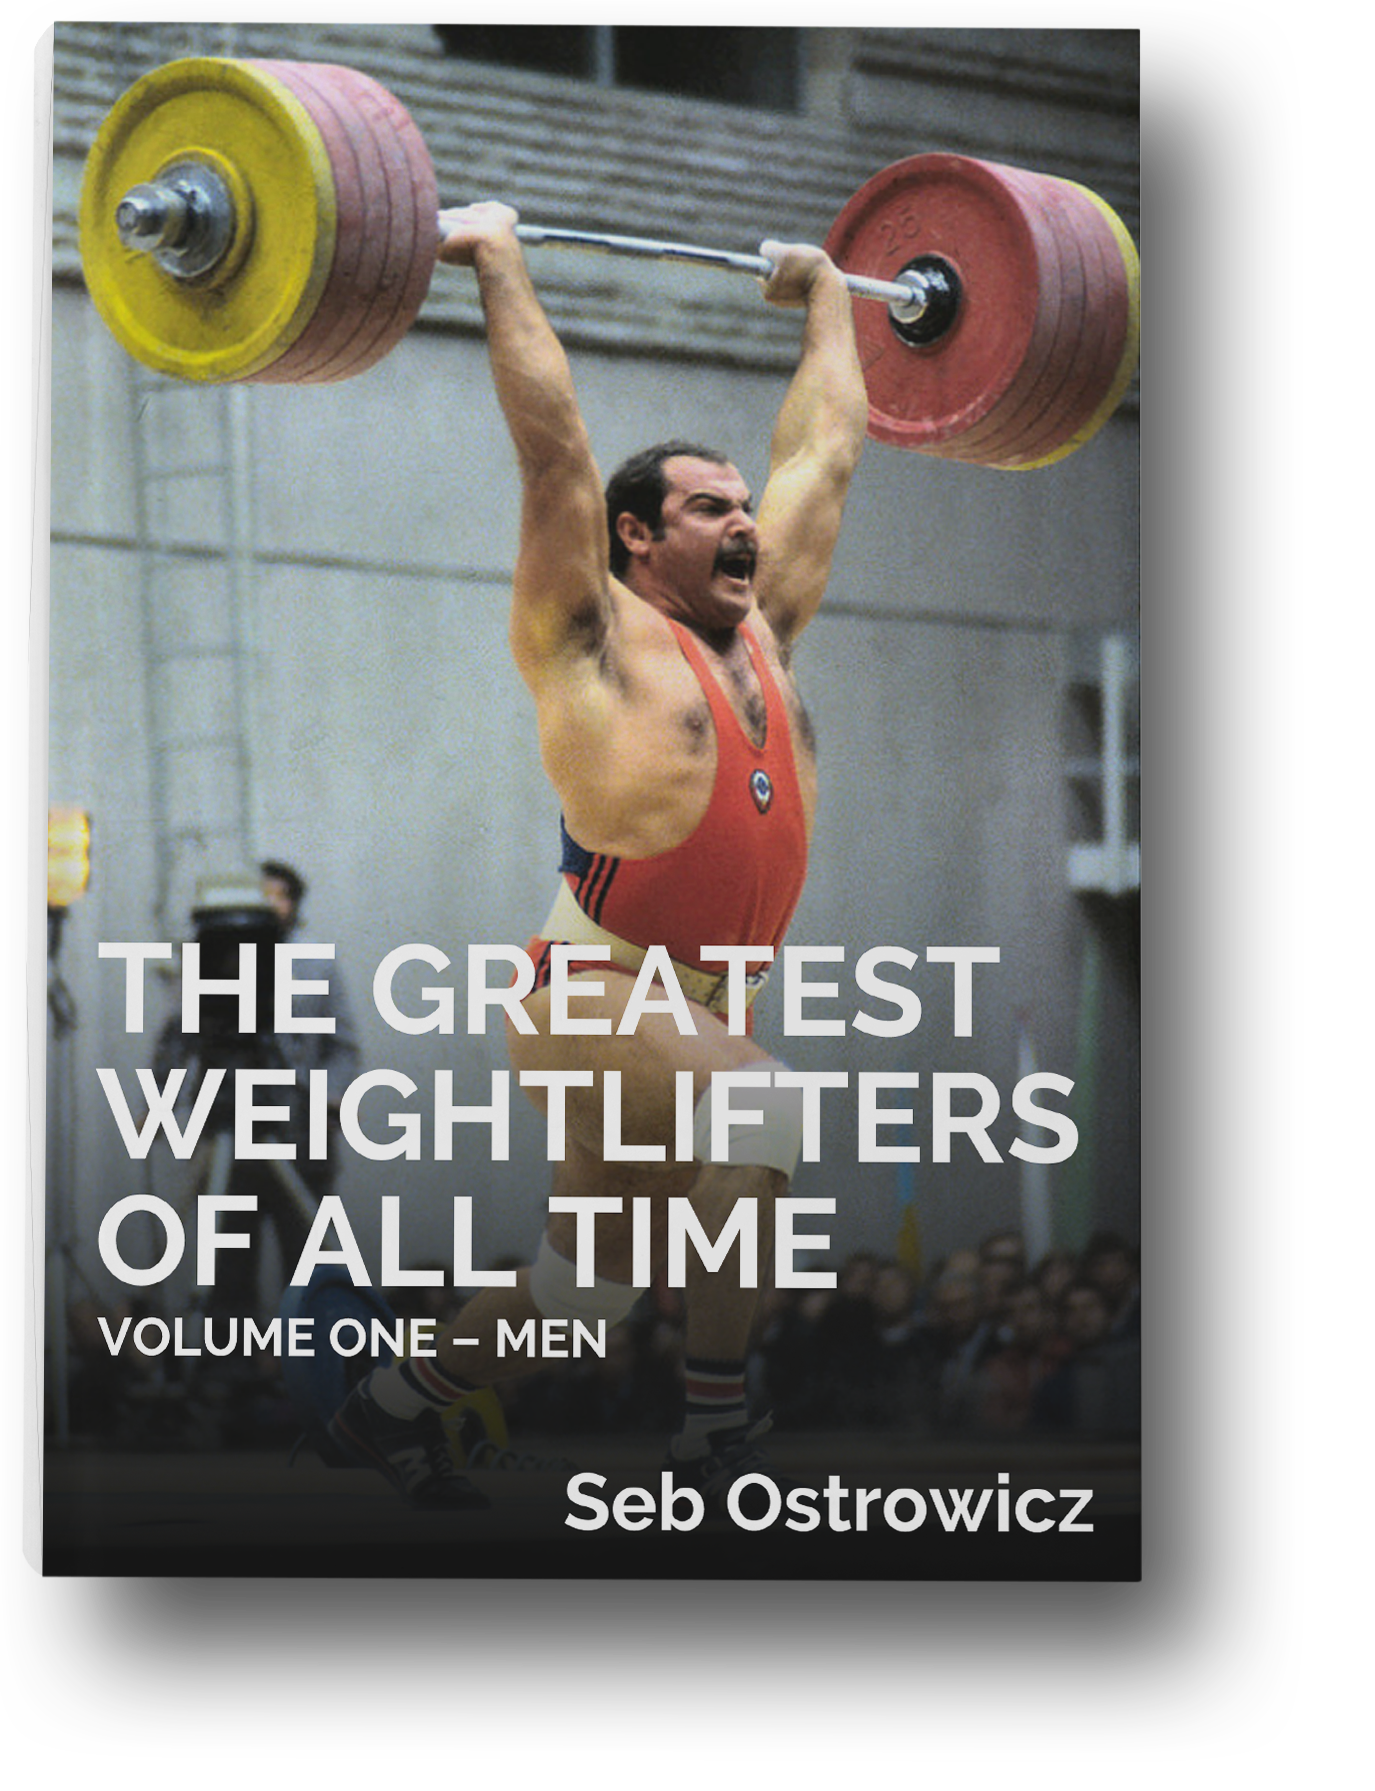 GreatestWeightlifters_Cover